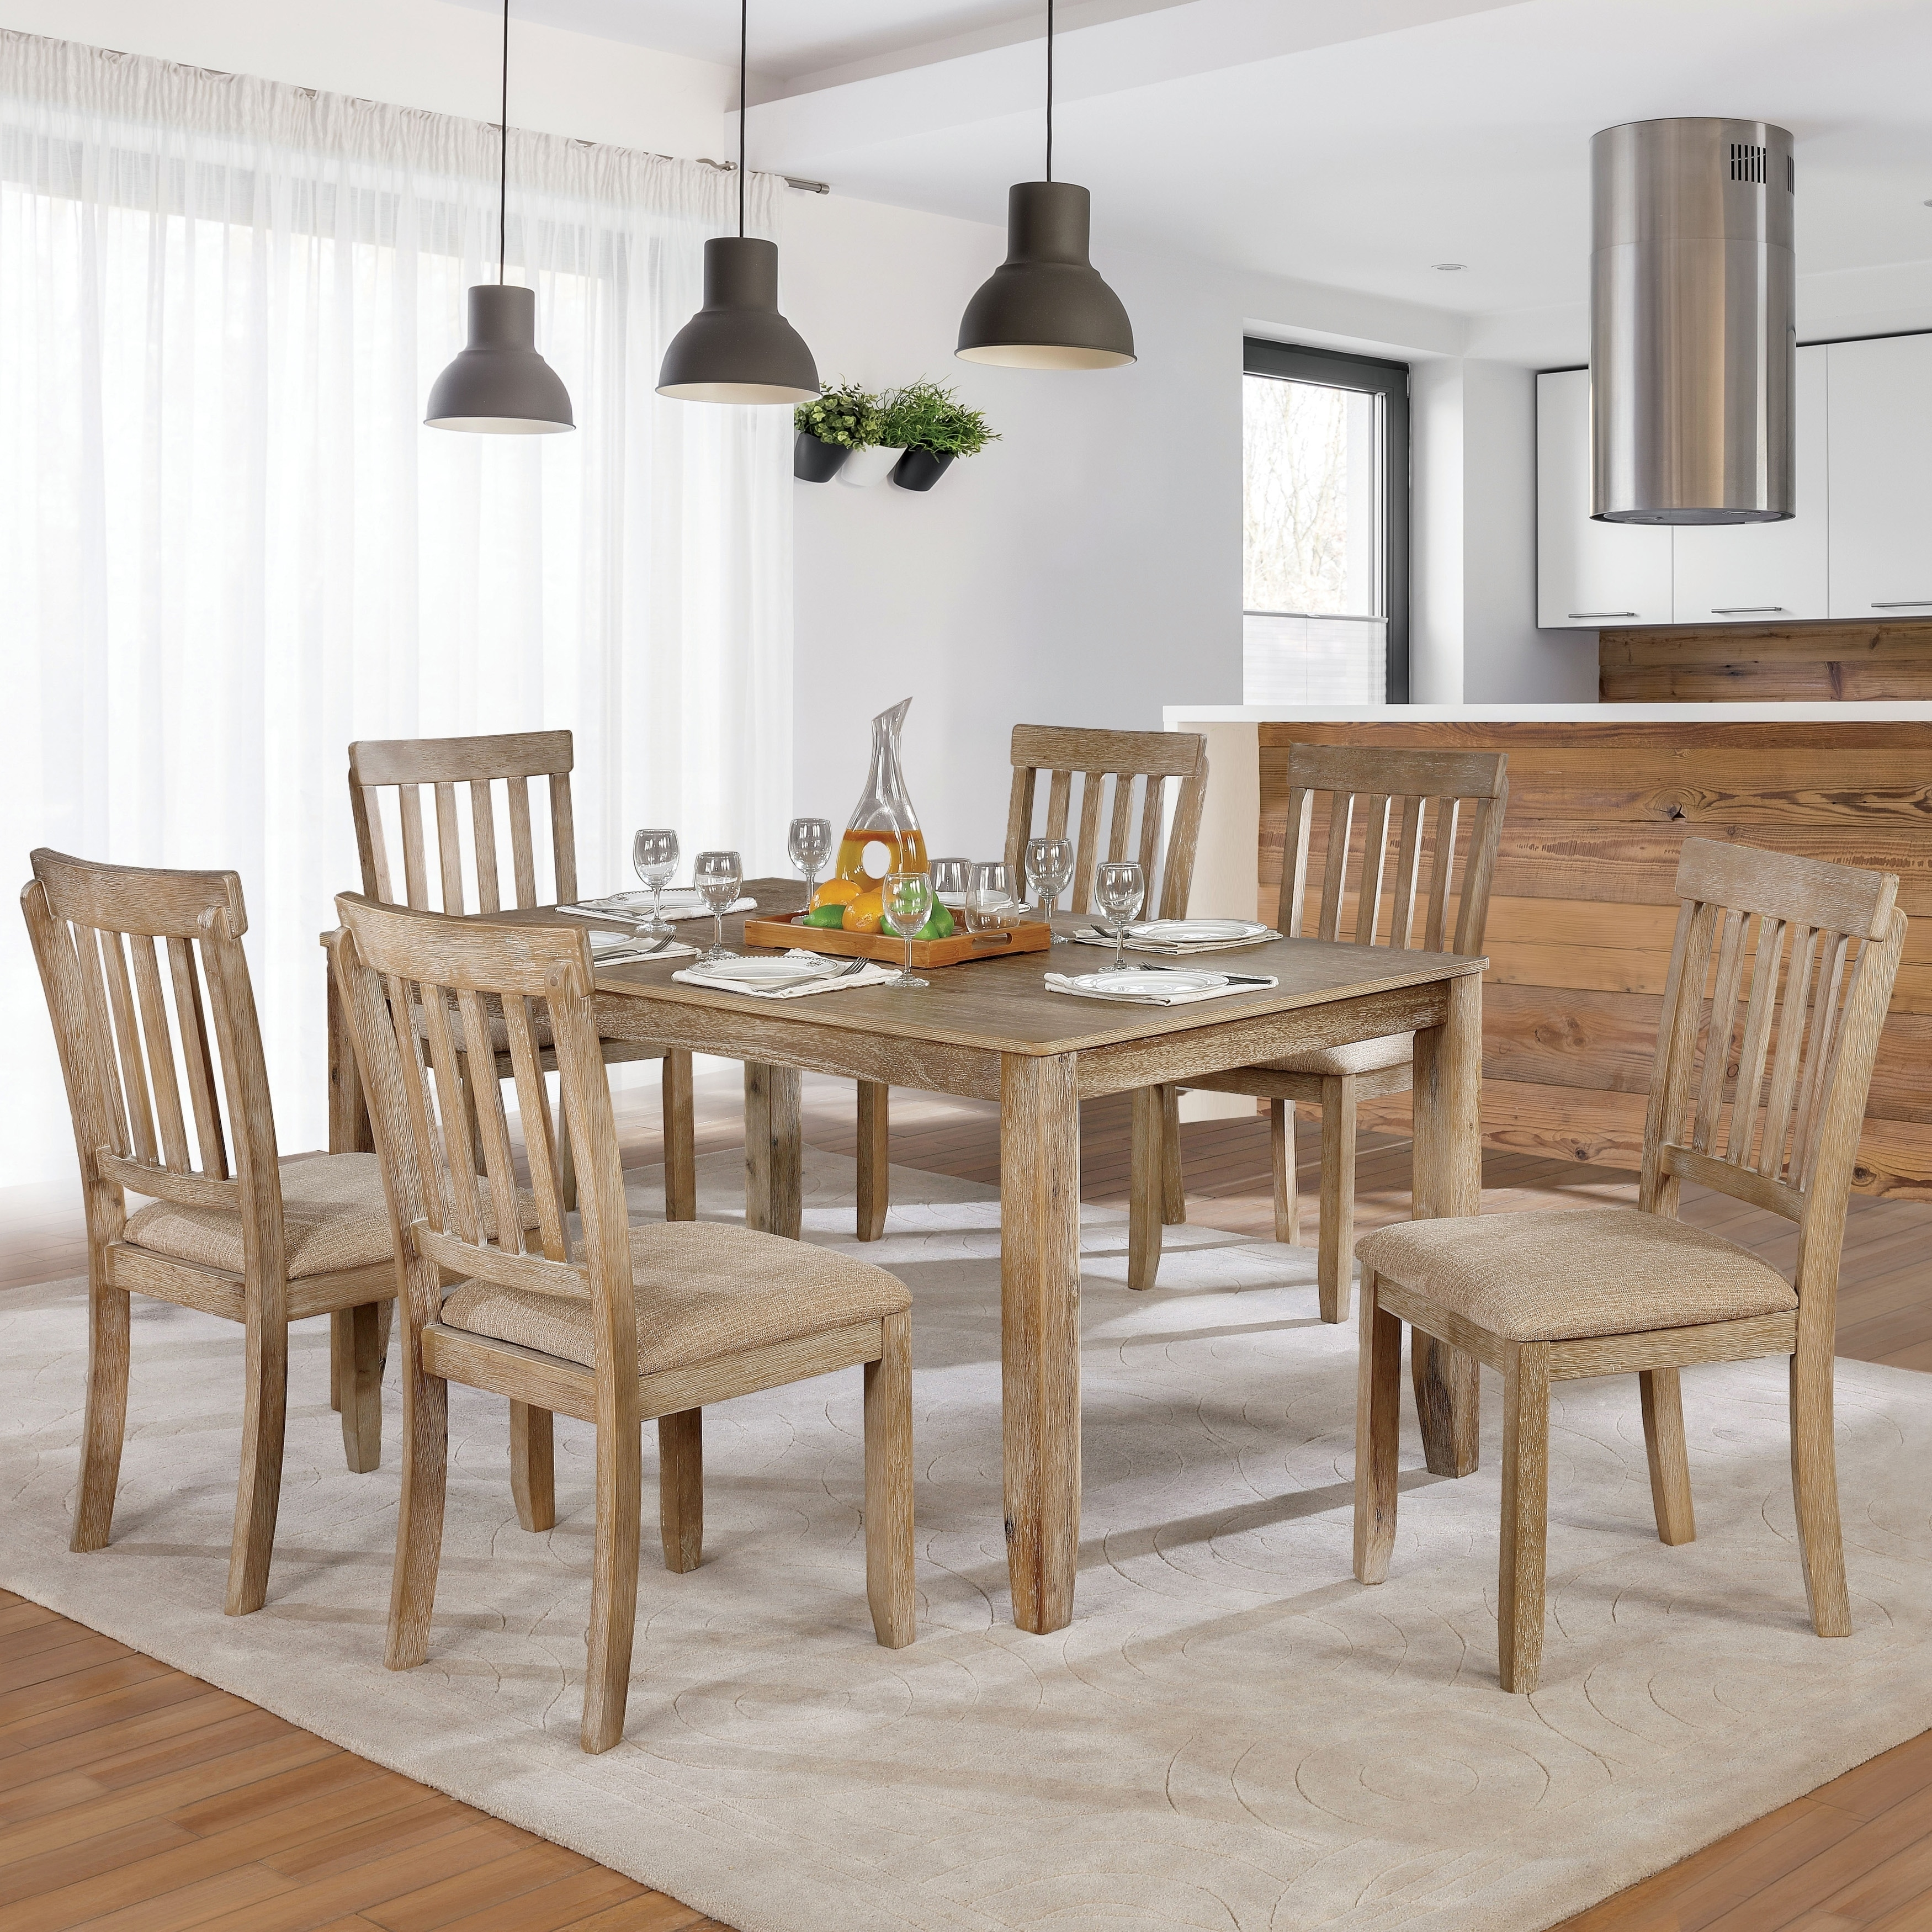 The Gray Barn Summerside Rustic Farmhouse 7 Piece Dining Set On Sale Overstock 23570148